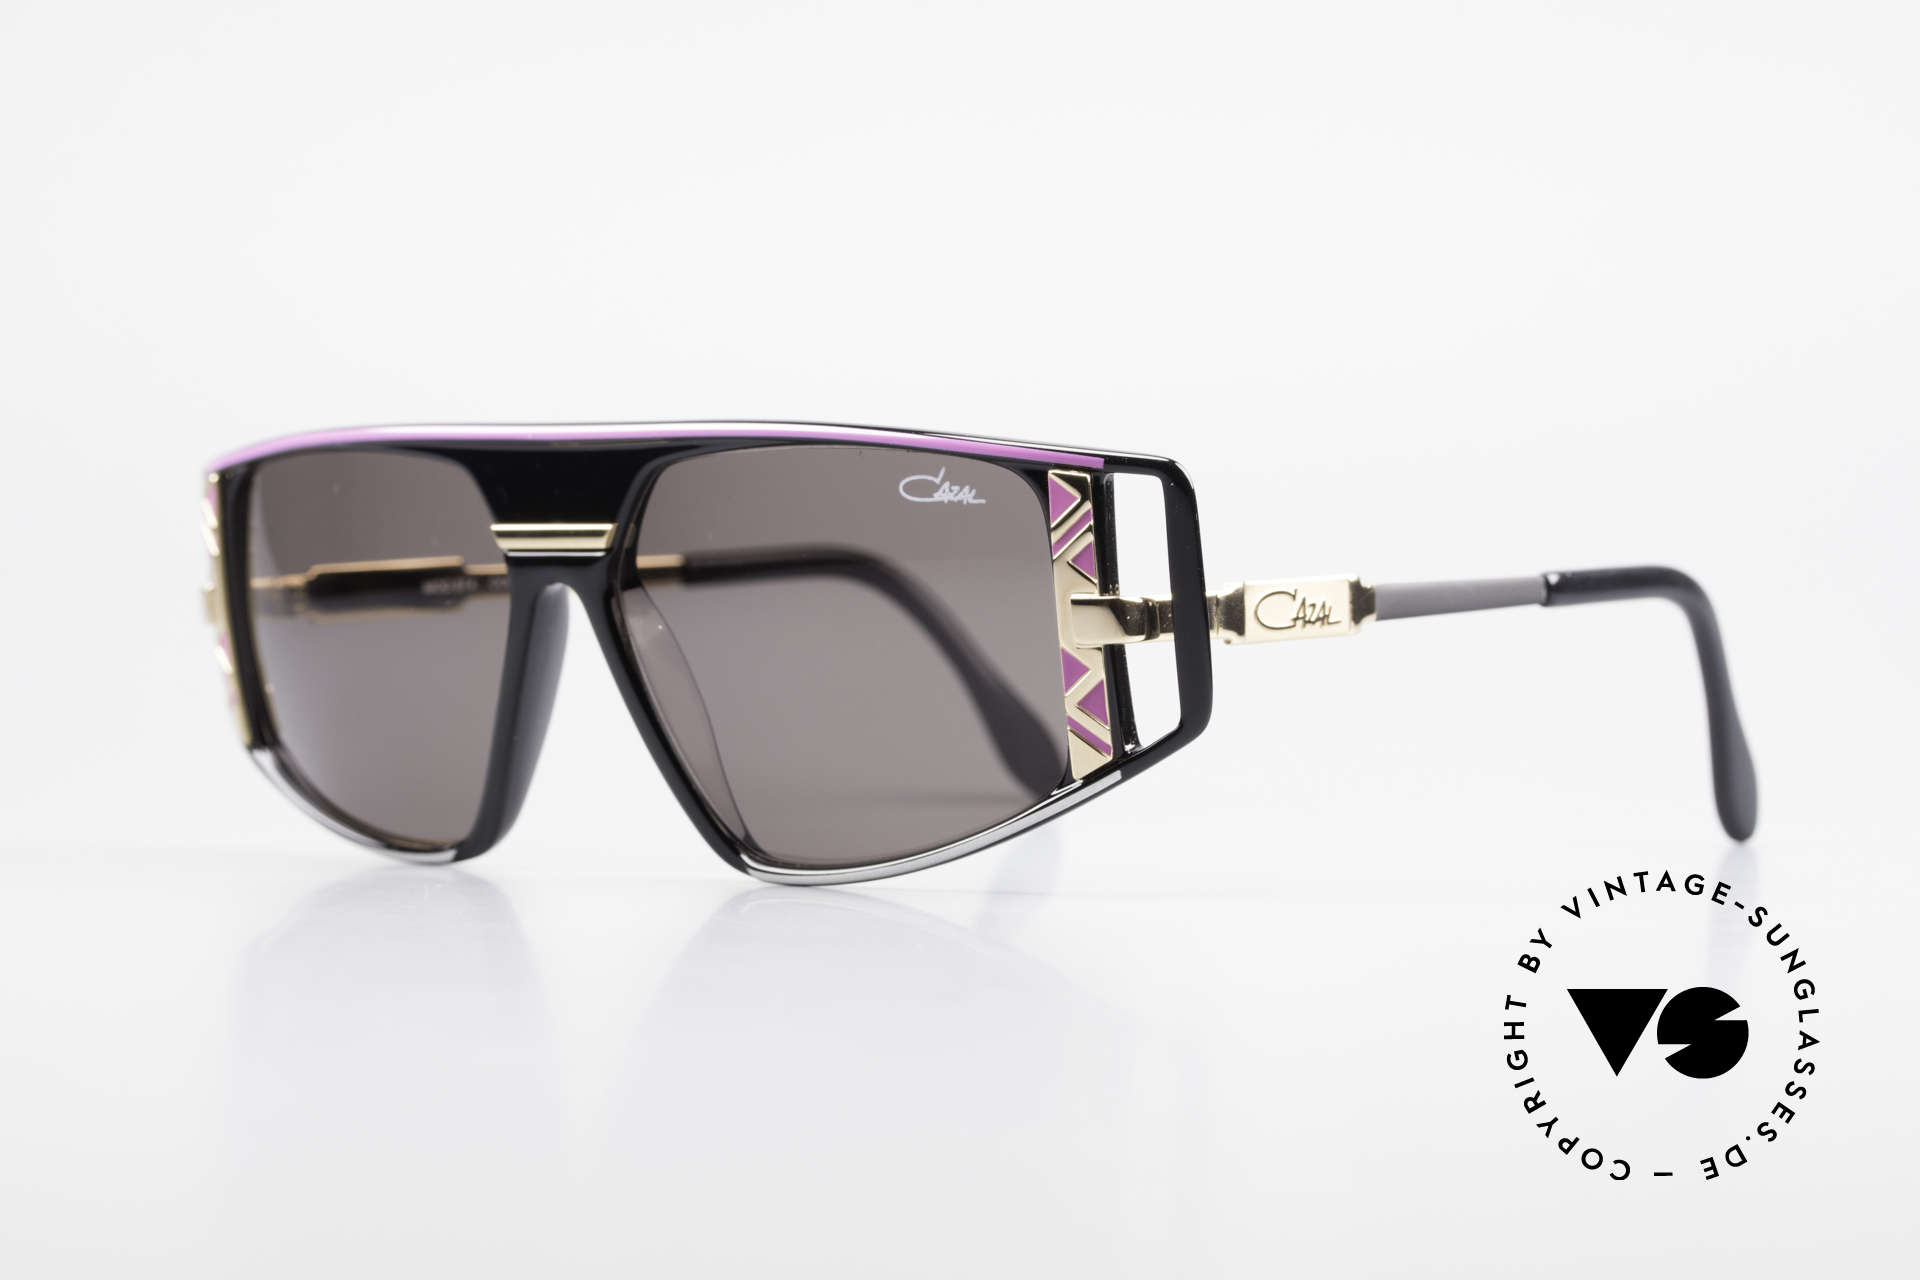 Cazal 874 90's Shades Lady Gaga Style, with many fancy design details (distinctive CAZAL), Made for Men and Women